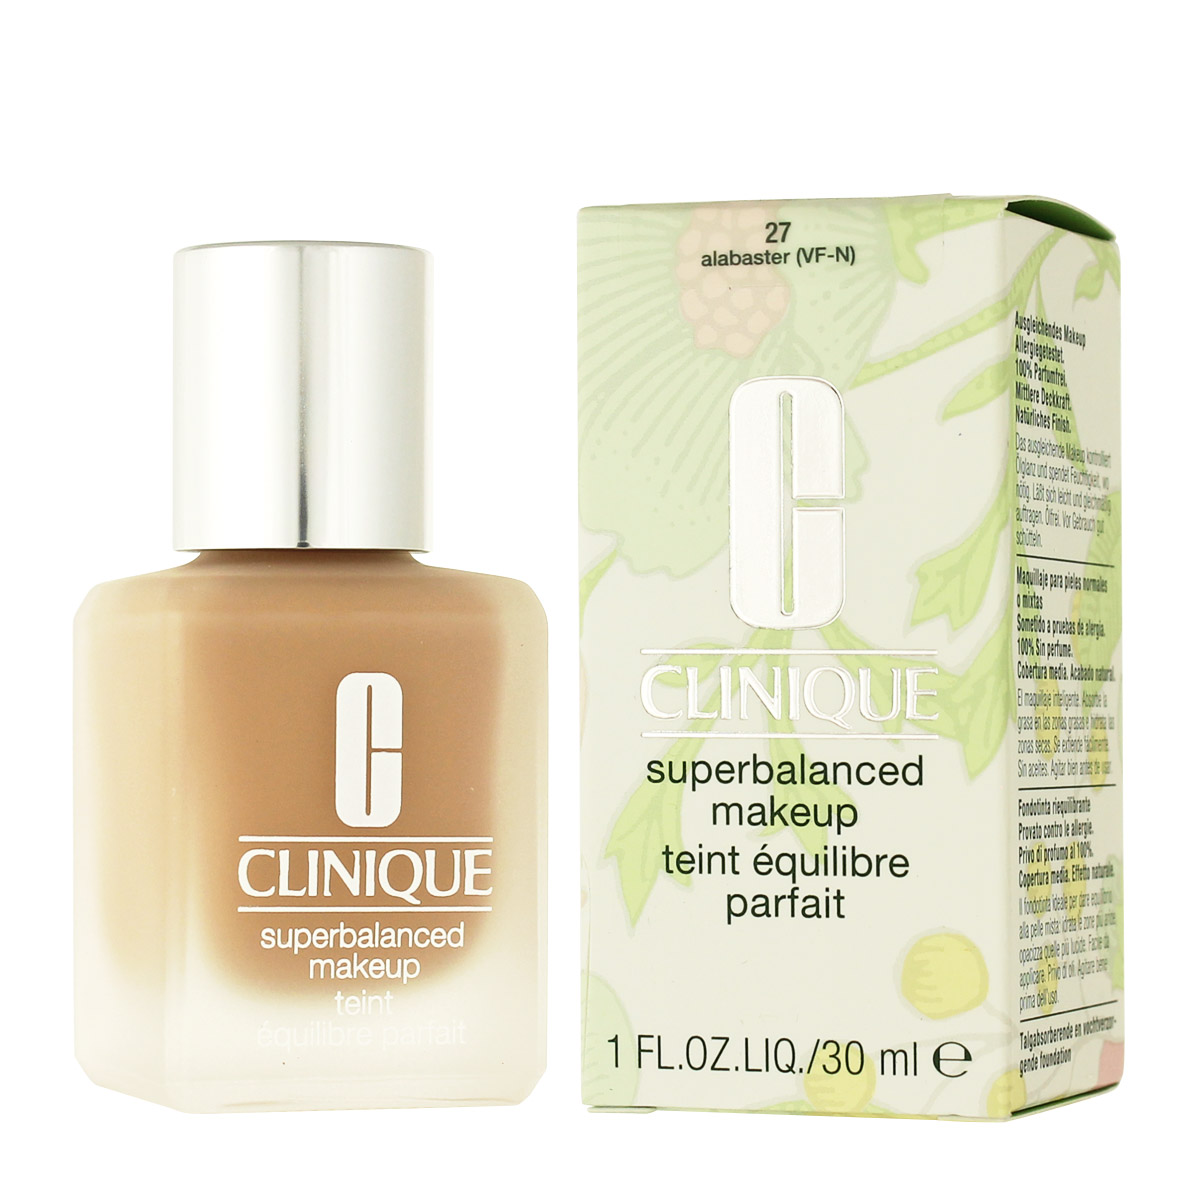 Clinique Superbalanced Makeup (27 Alabaster VF-N) 30 ml